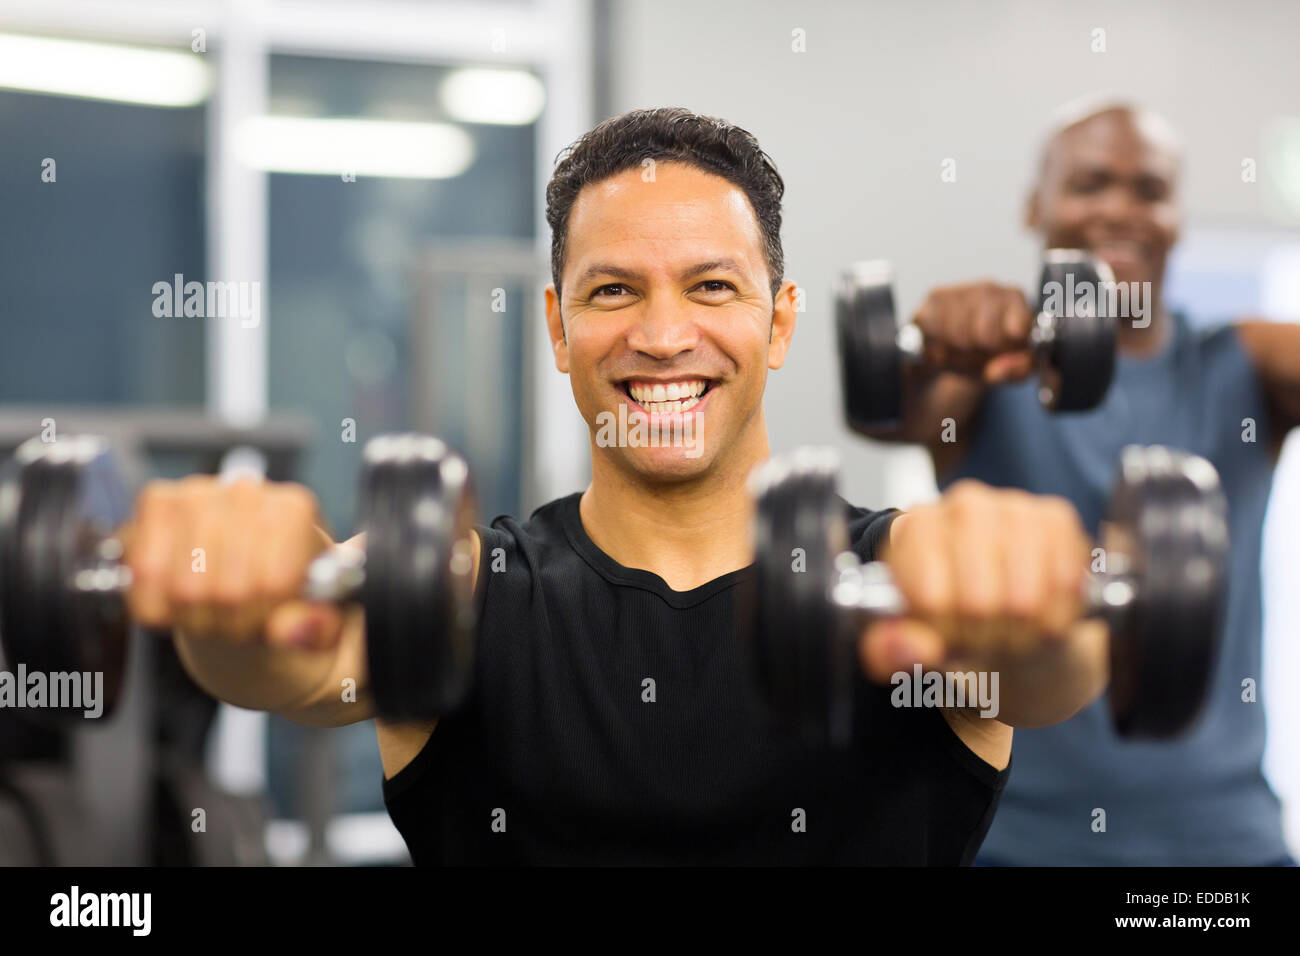 portrait of healthy man working out with dumbbells - Stock Image